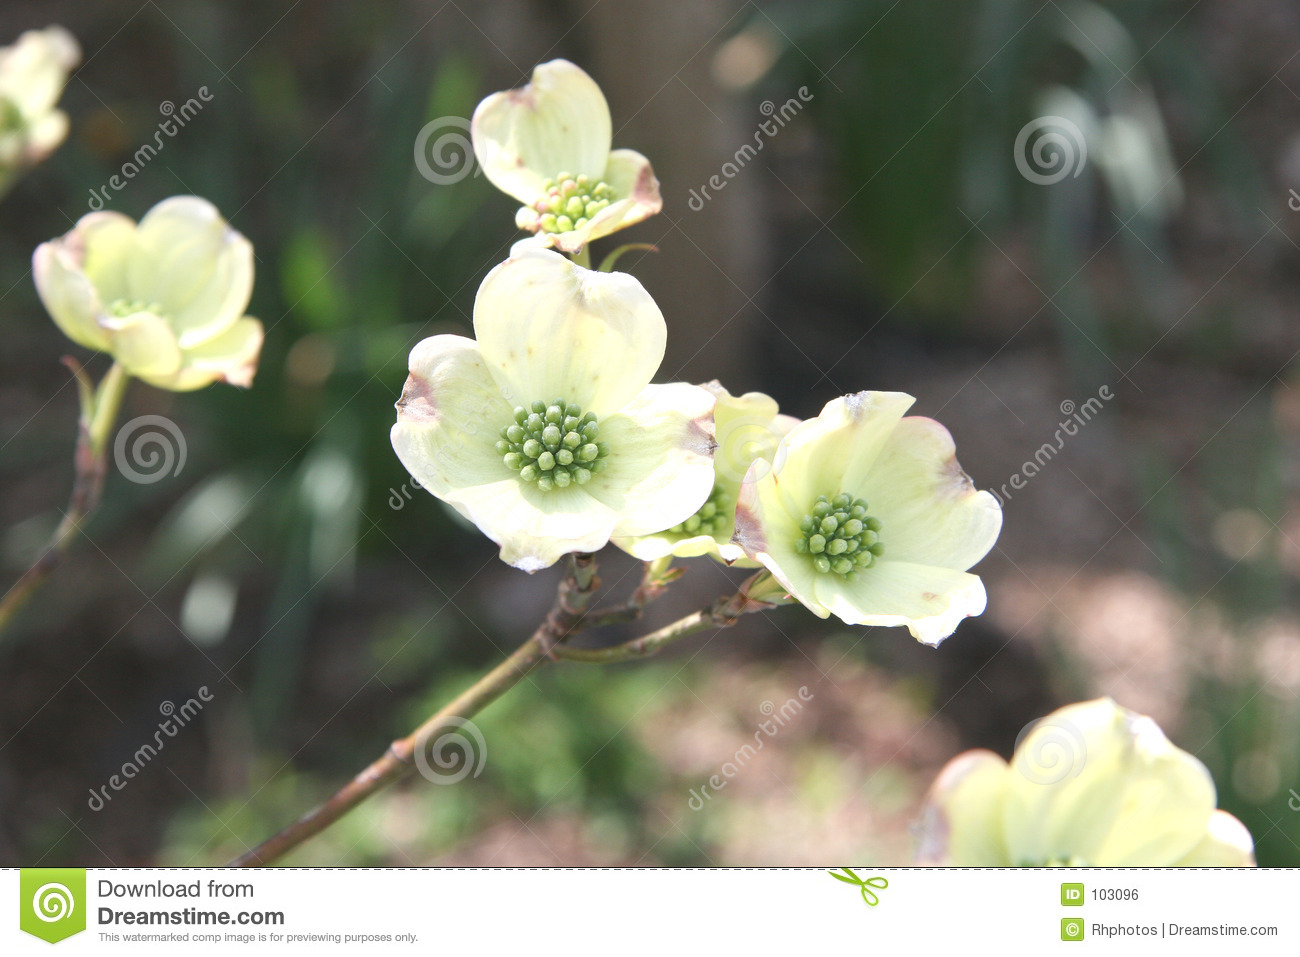 Blooming Dogwood in Spring